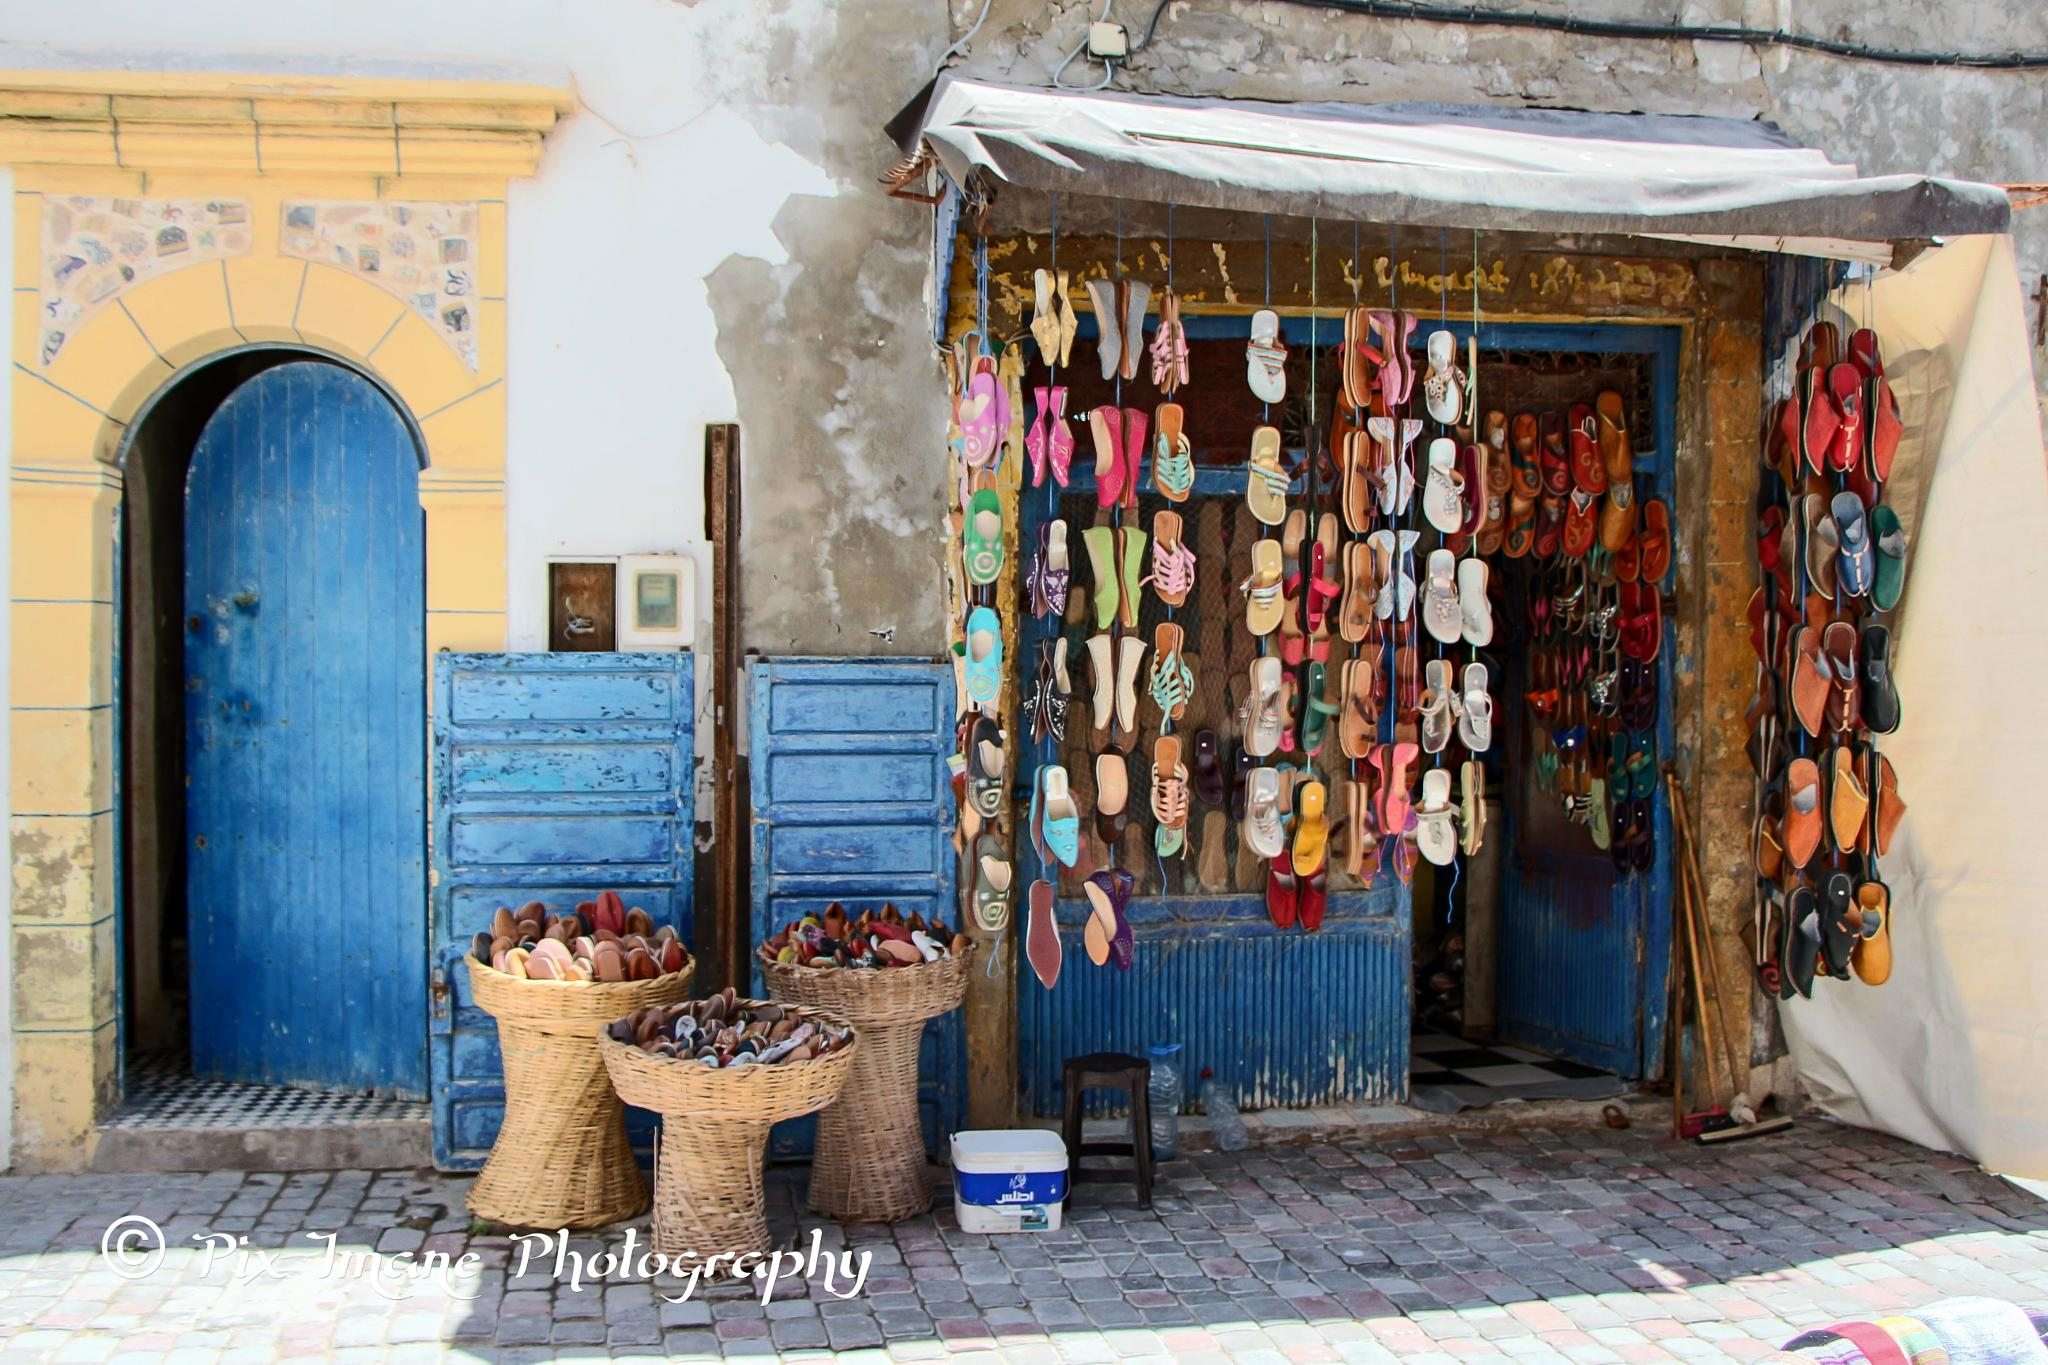 shoe shop in Essaouira -  Morocco by PixImane Photography